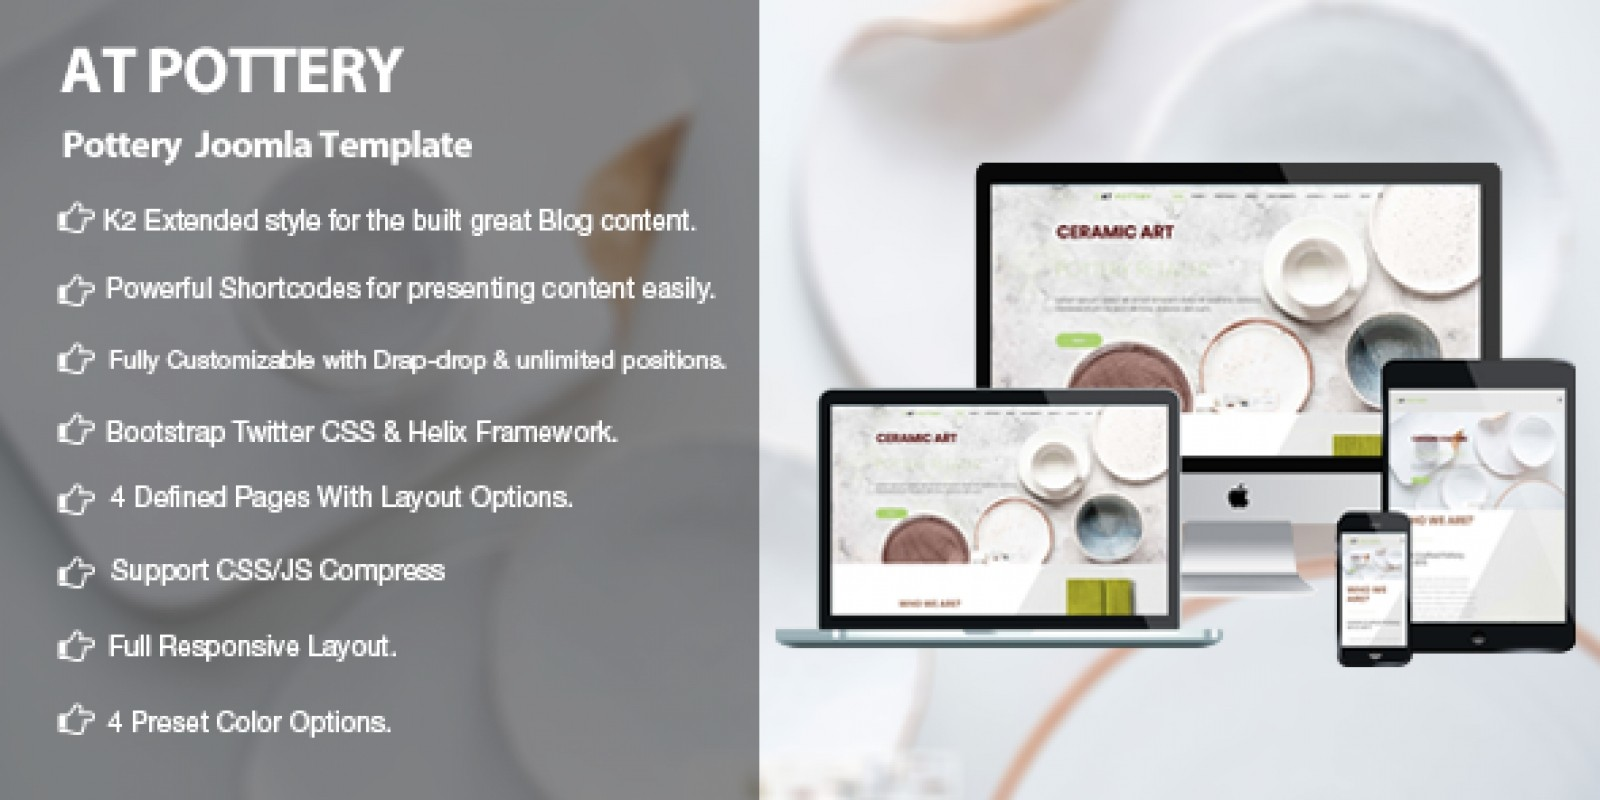 AT Pottery - Pottery Joomla Template